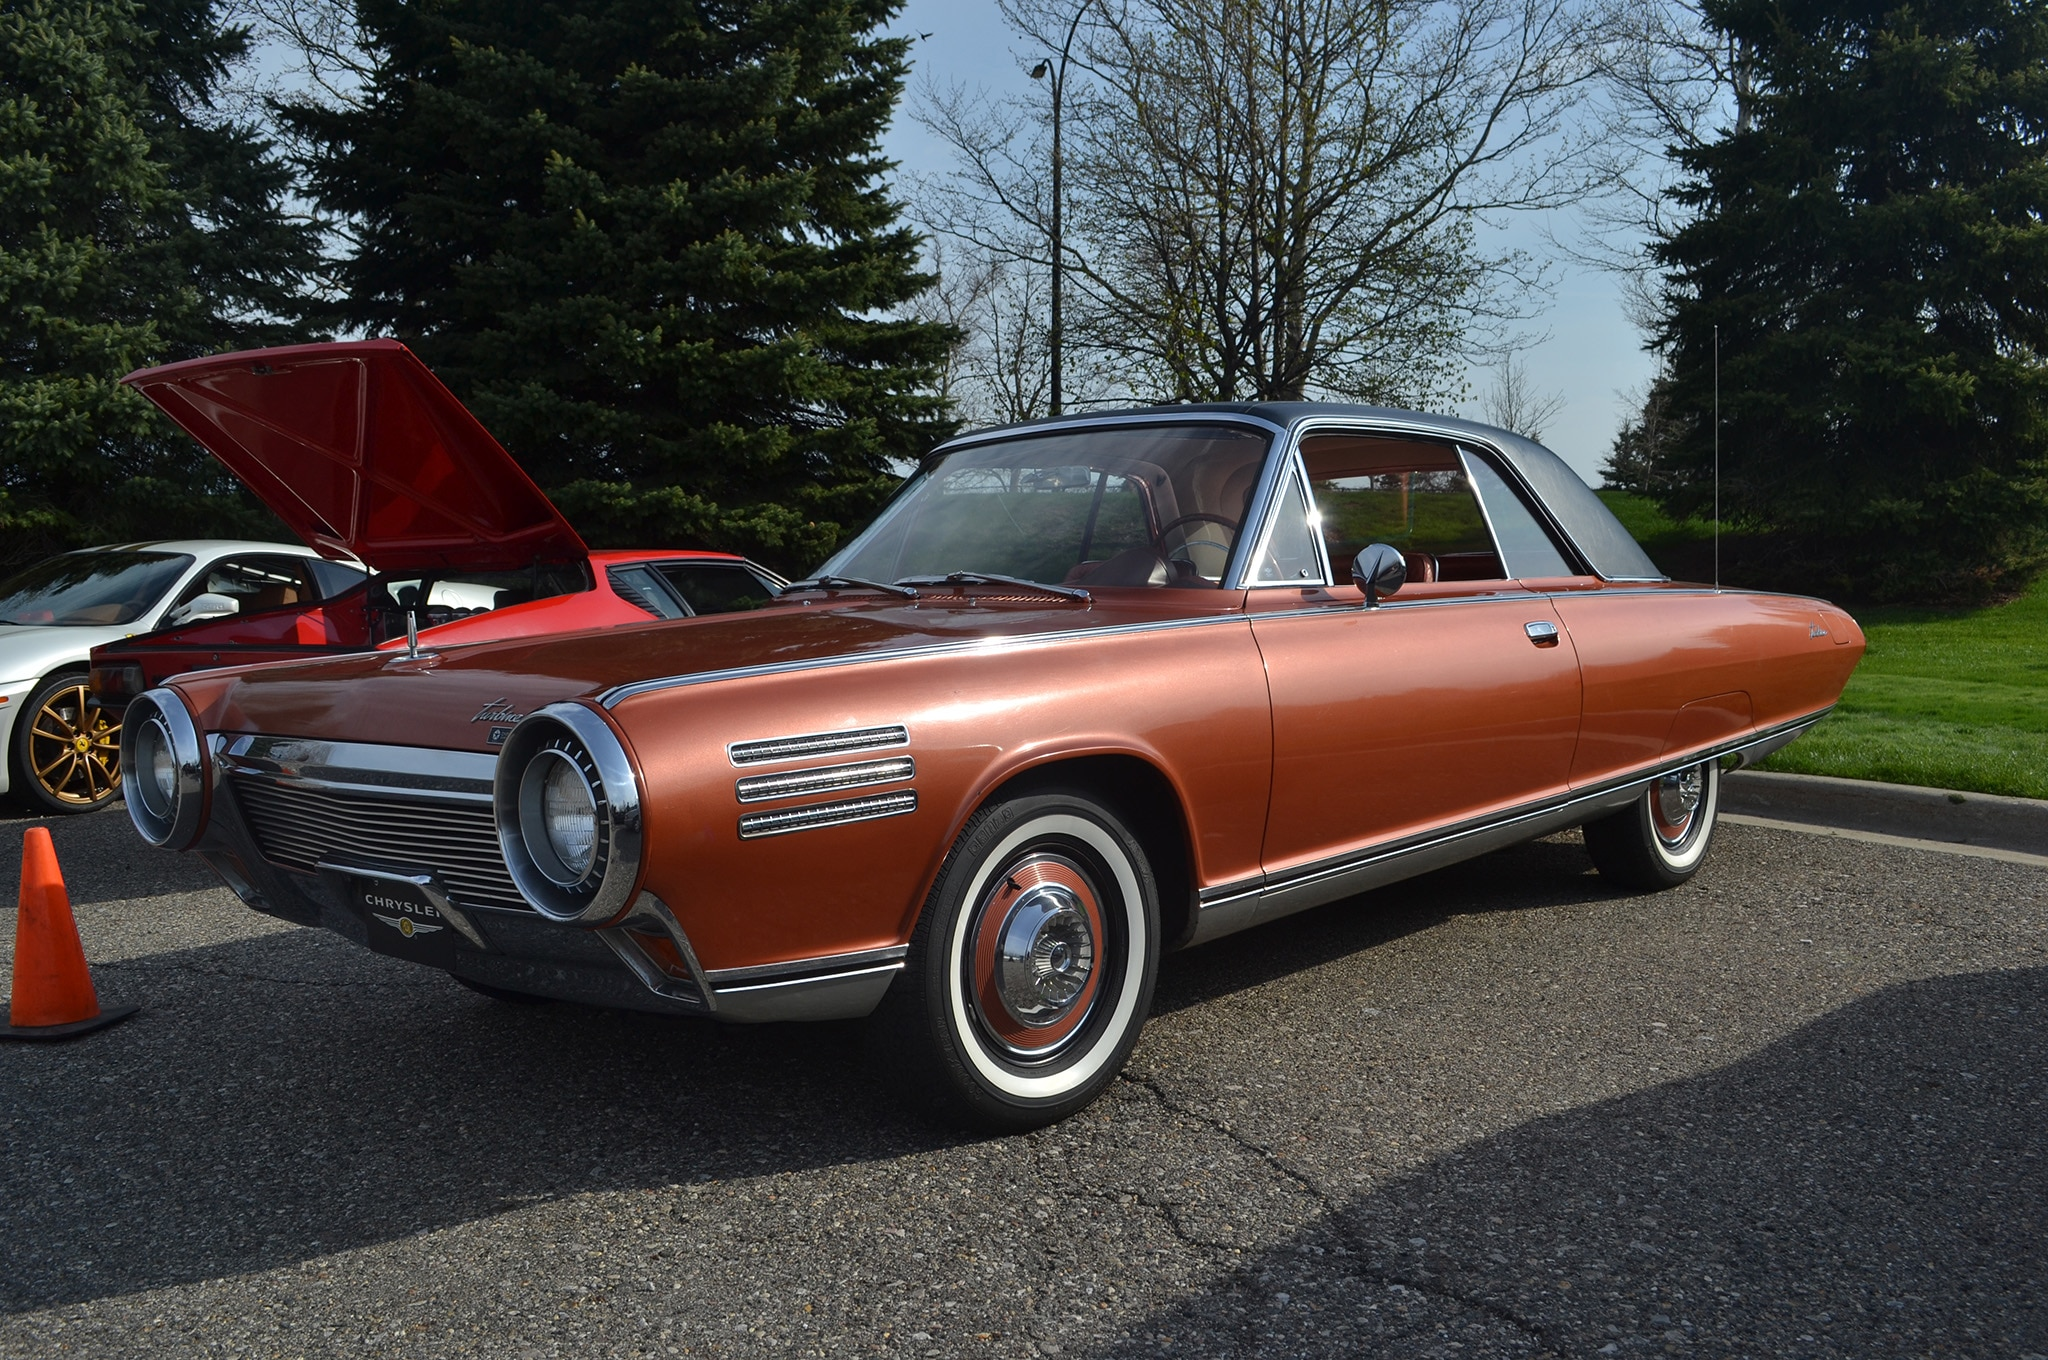 Chrysler Turbine Car FCA Cars And Coffee